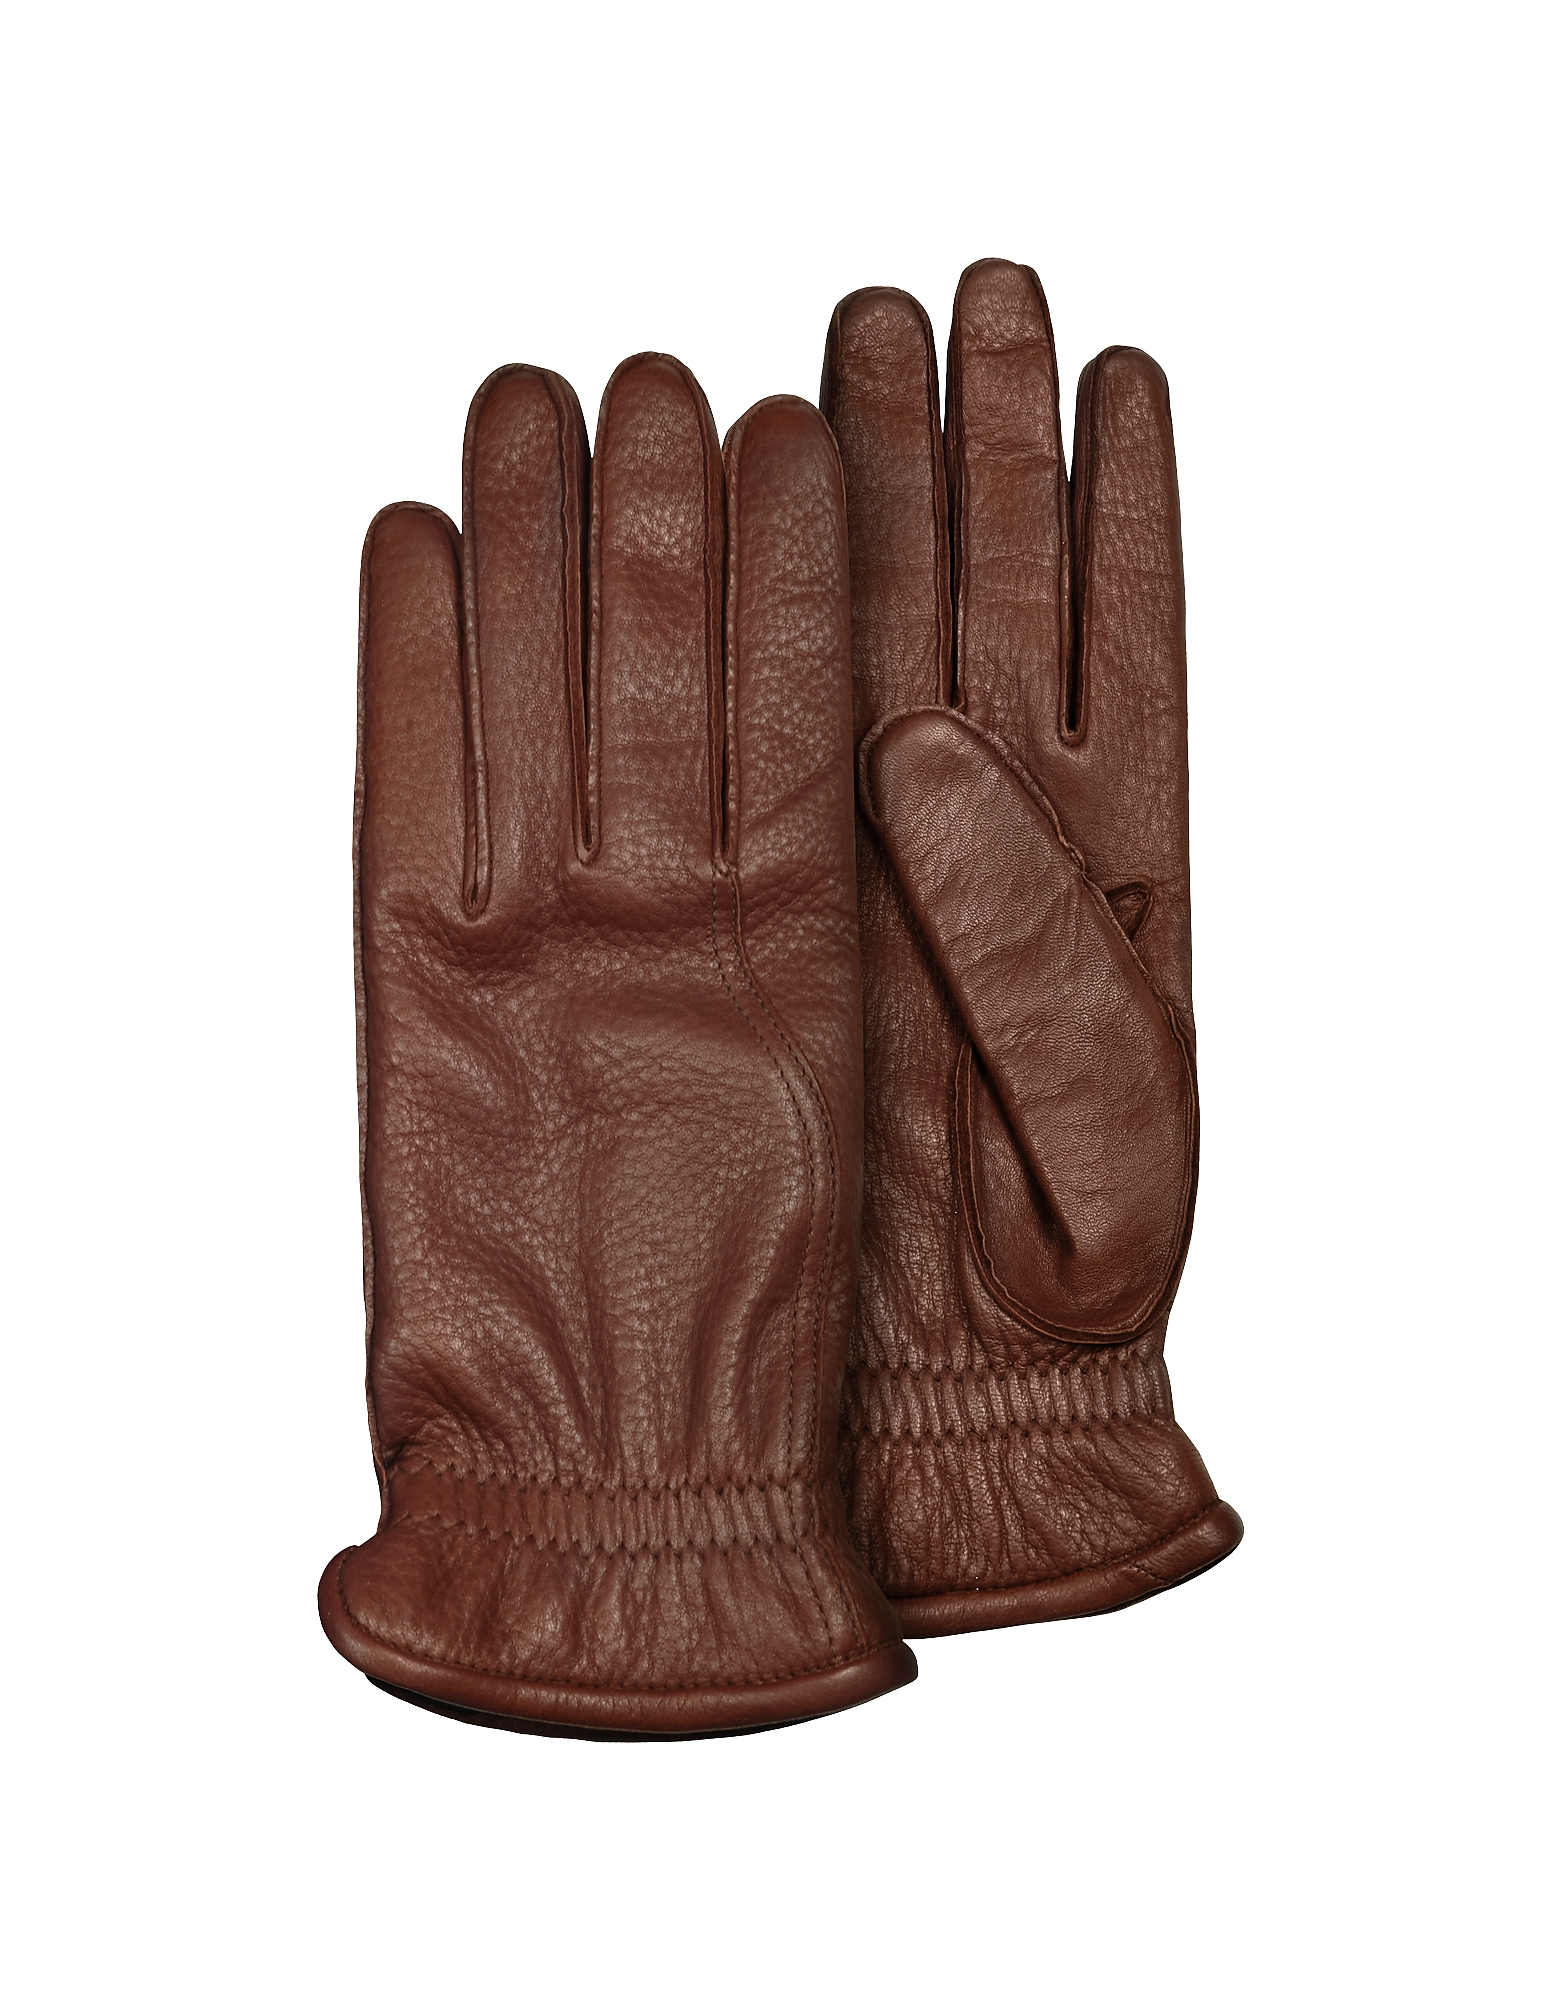 Pineider Men's Gloves, Men's Brown Deerskin Leather Gloves w/ Cashmere Lining